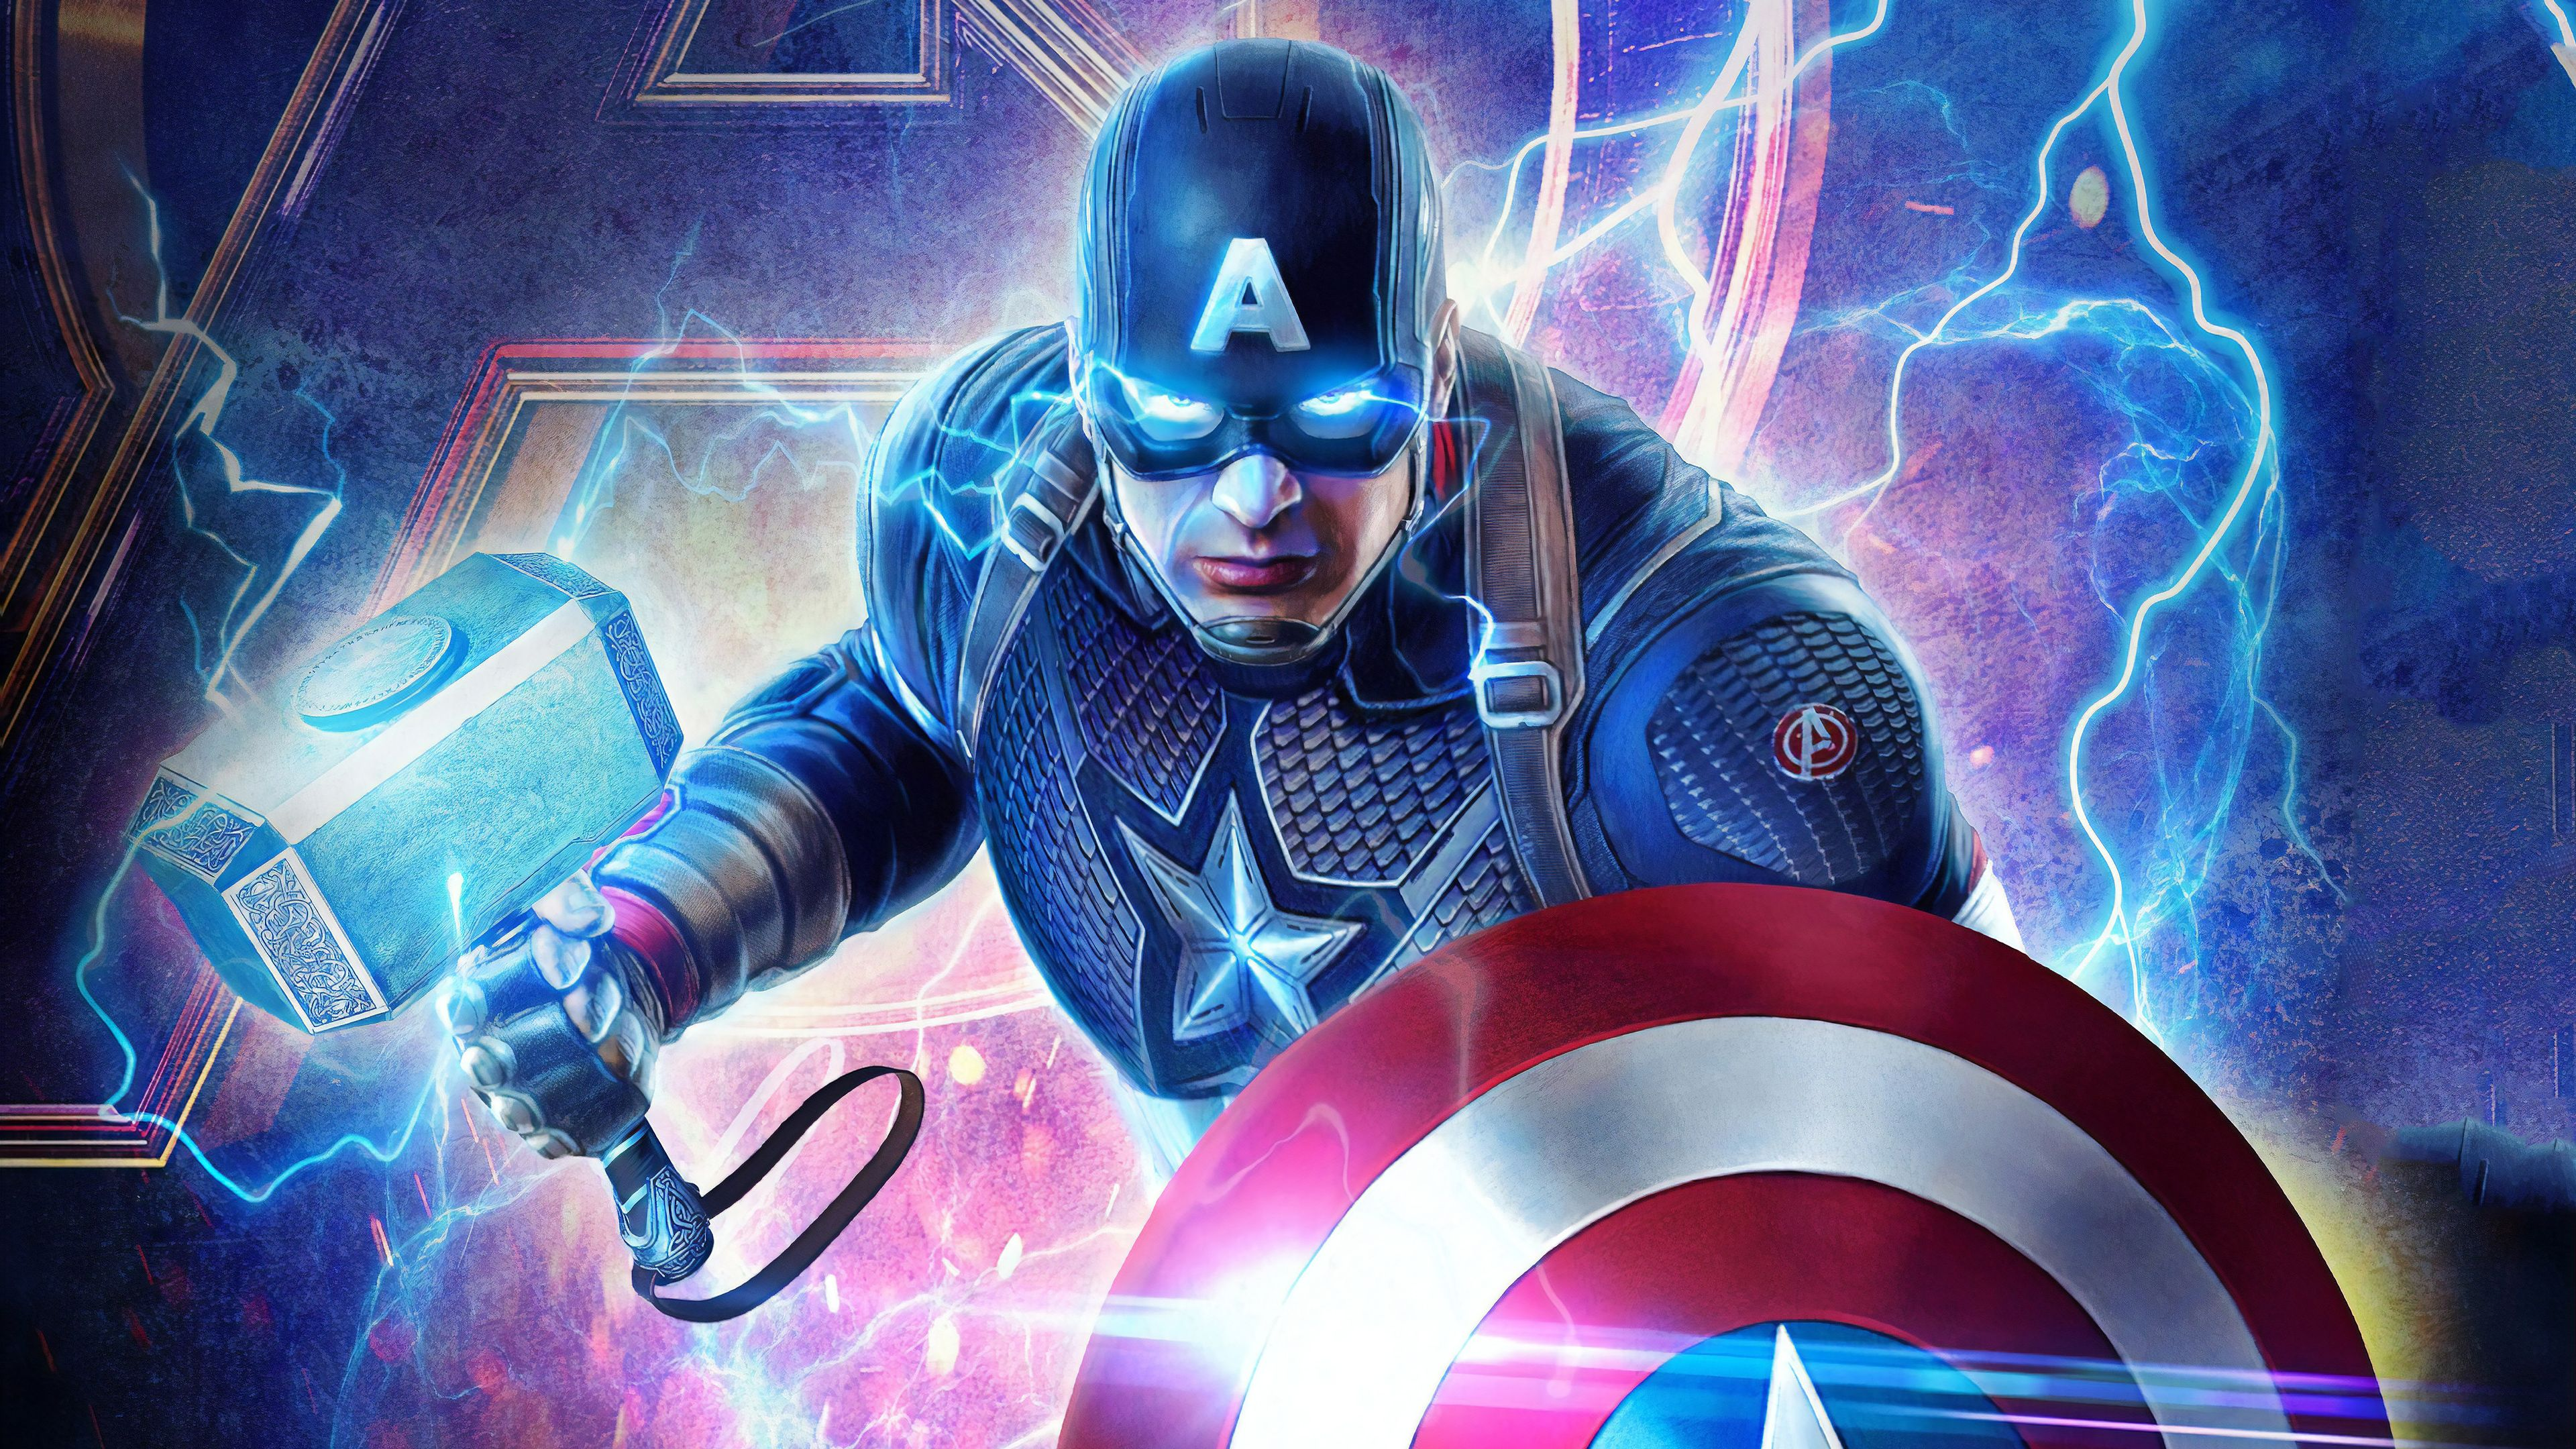 Captain America Endgame Wallpapers Top Free Captain America